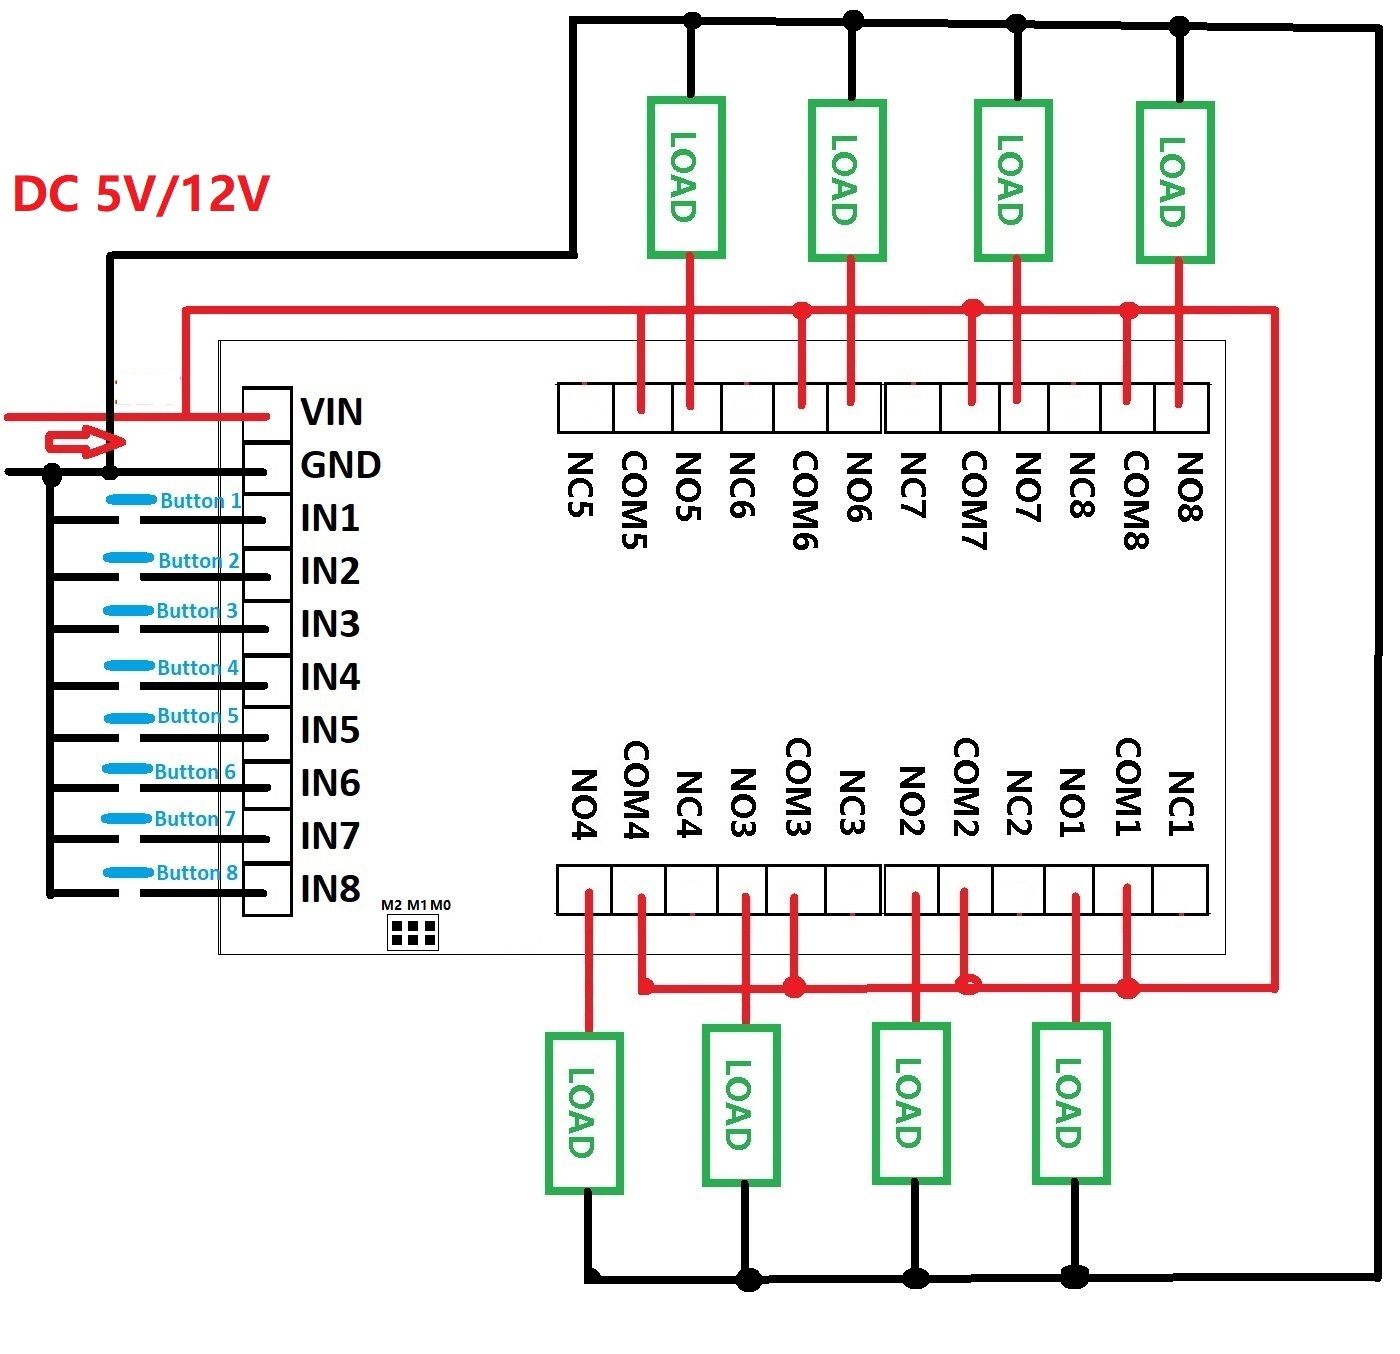 Big SaleªFlip-Flop-Latch Infrared-Control-Delay-Relay-Module VS1838 5V 12V Multi-Function Bistable